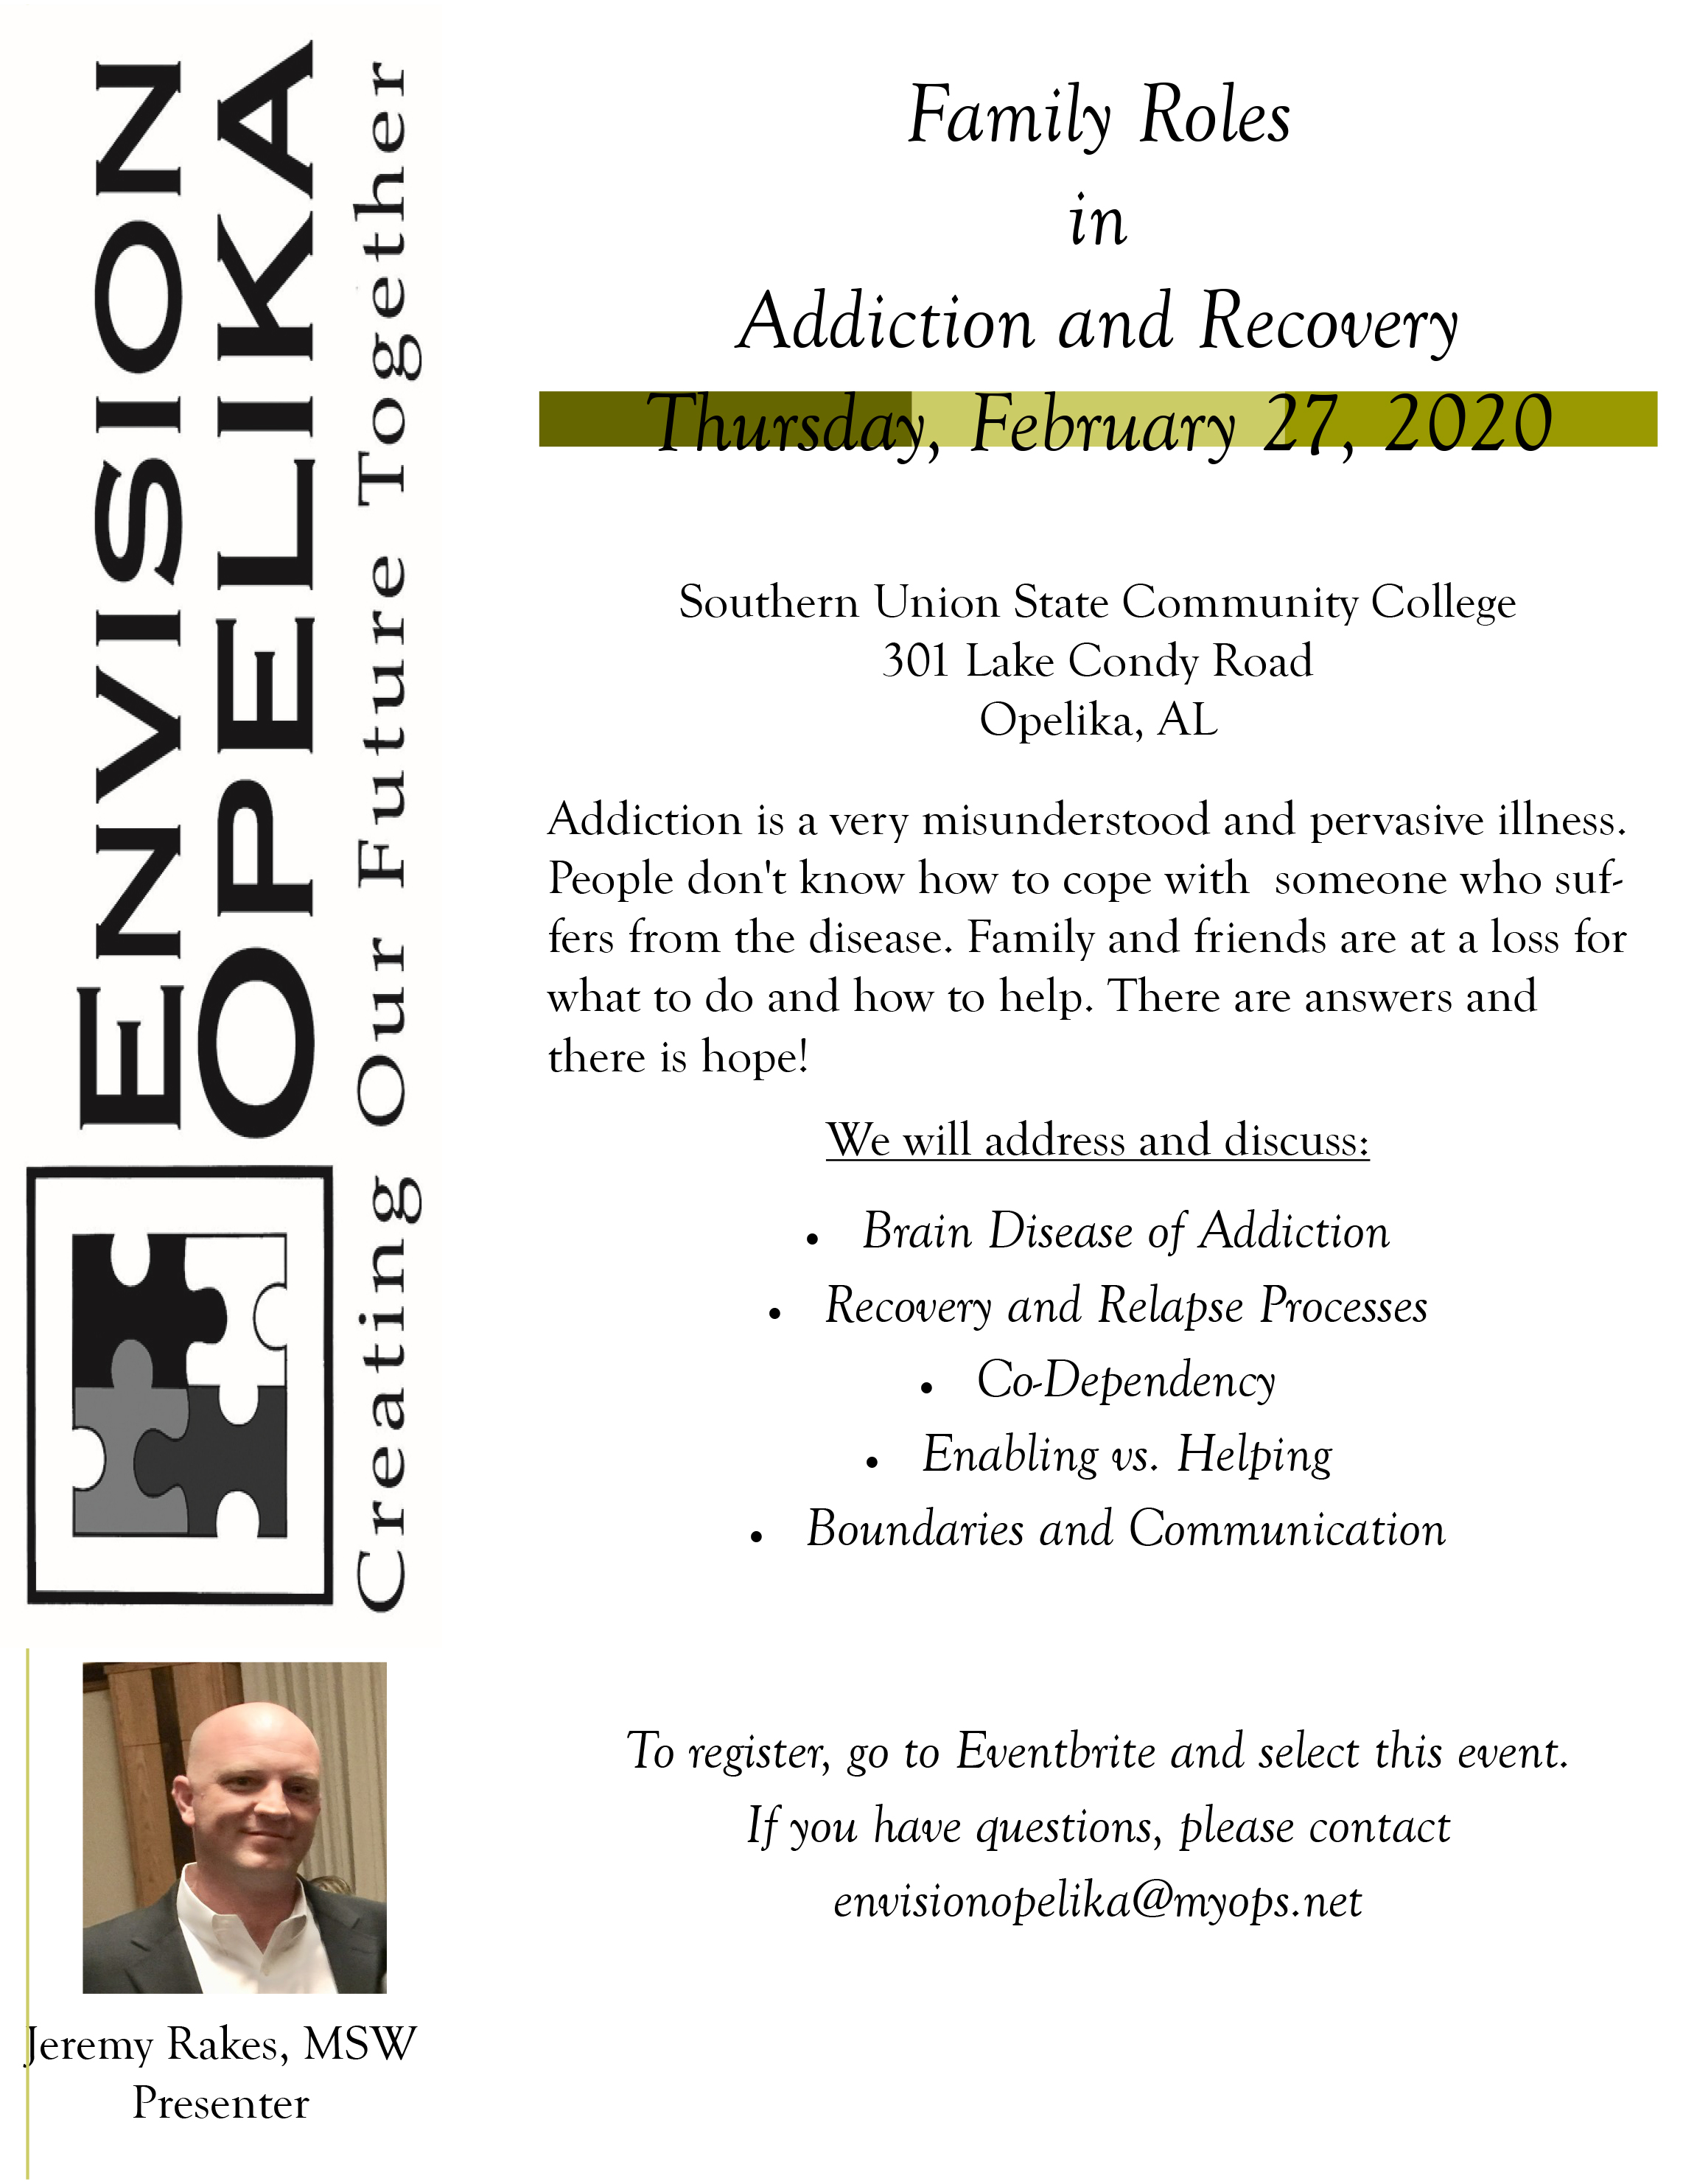 Family Roles in Addiction and Recovery- Feb 27